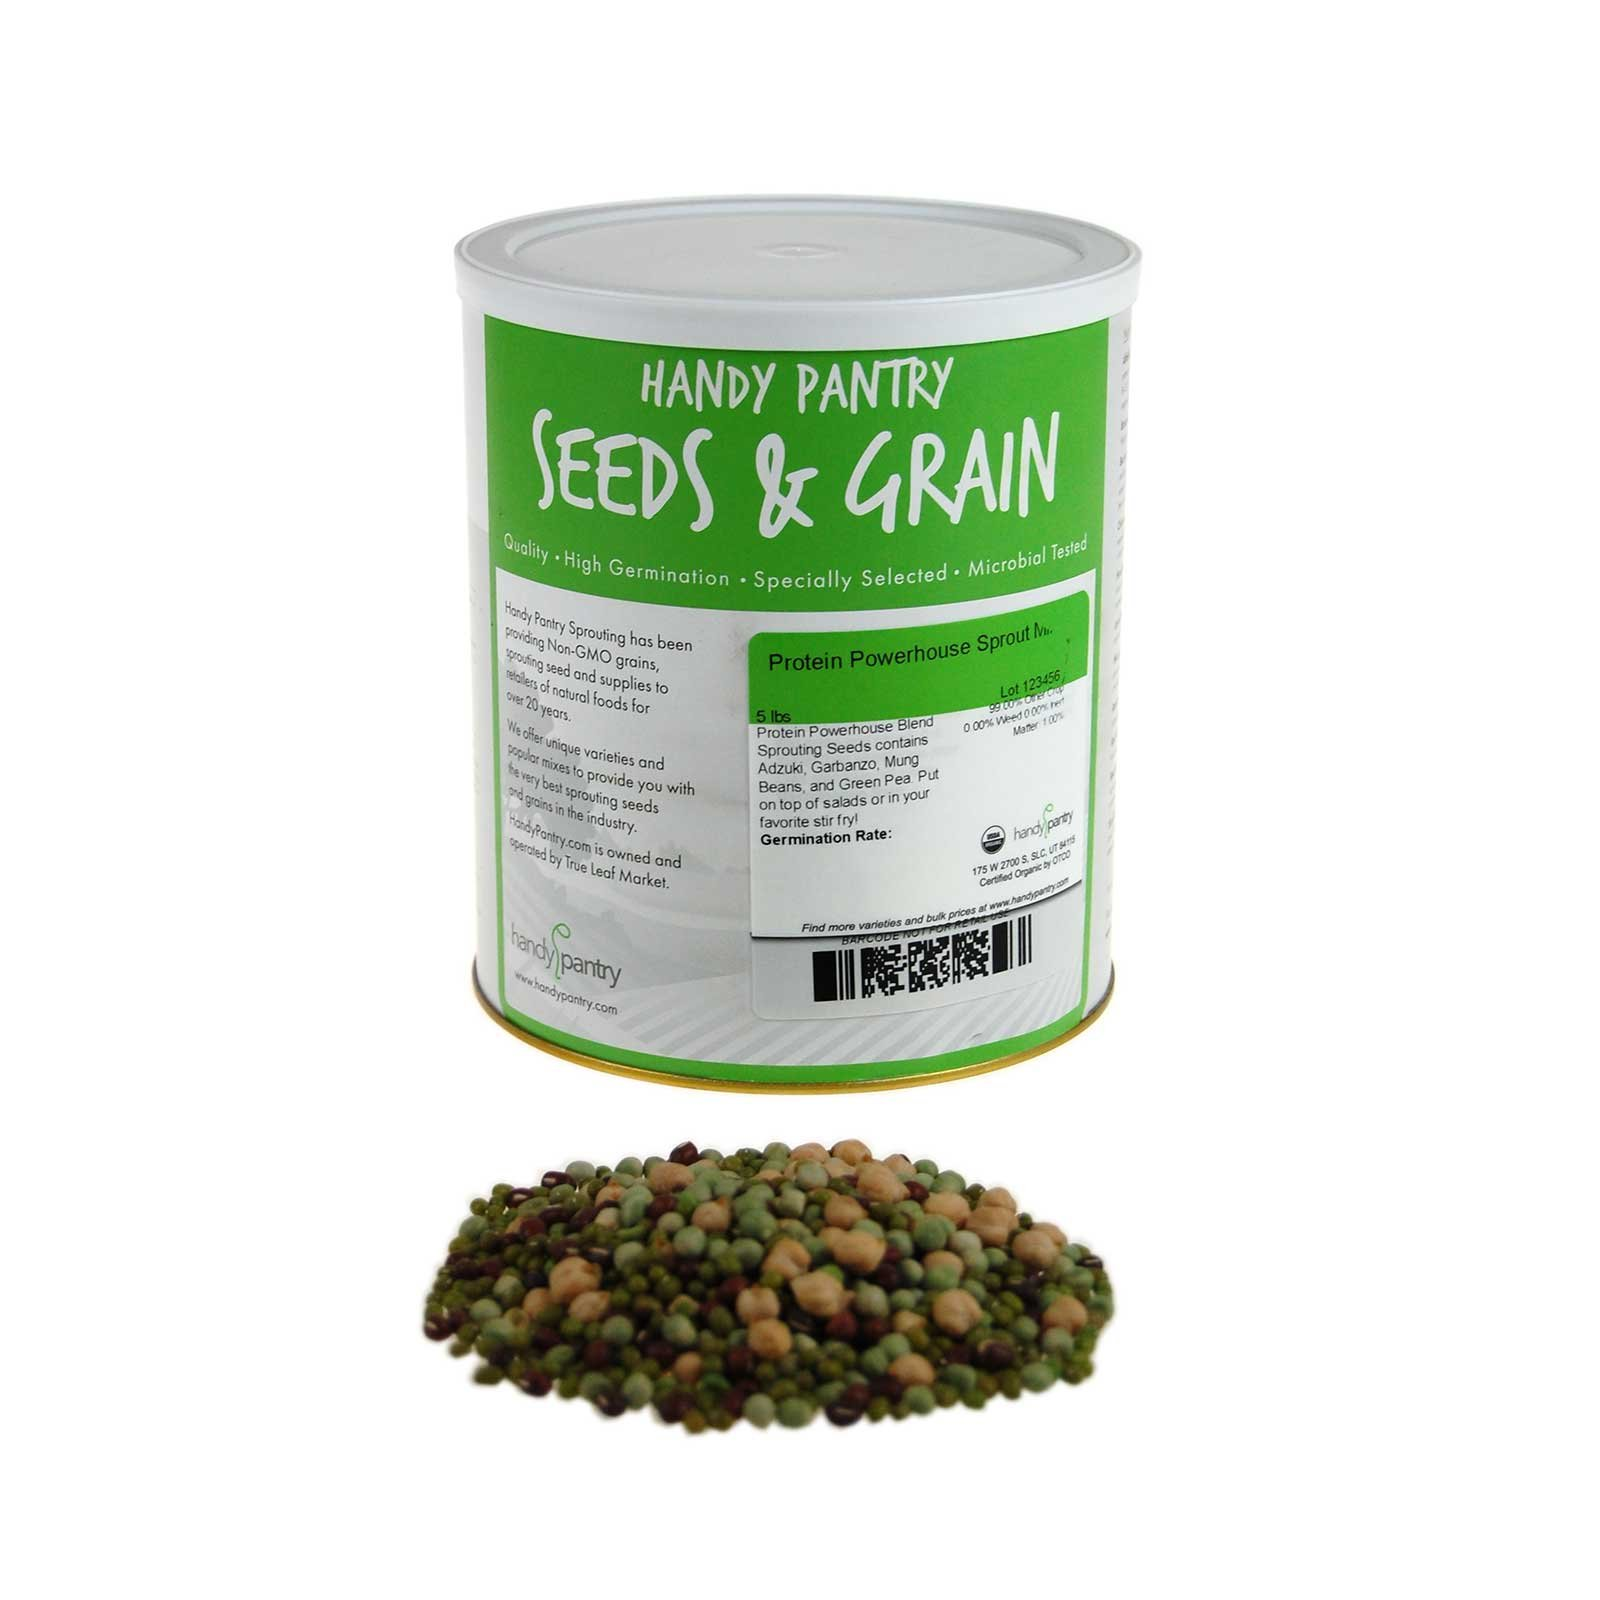 Handy Pantry Protein Powerhouse Sprouting Seed Mix: 5 Lb - Organic, Non-GMO - Sprouting Sprouts, Food Storage. High Protien Sprouts - Pea, Mung, Green Pea, Adzuki by Handy Pantry